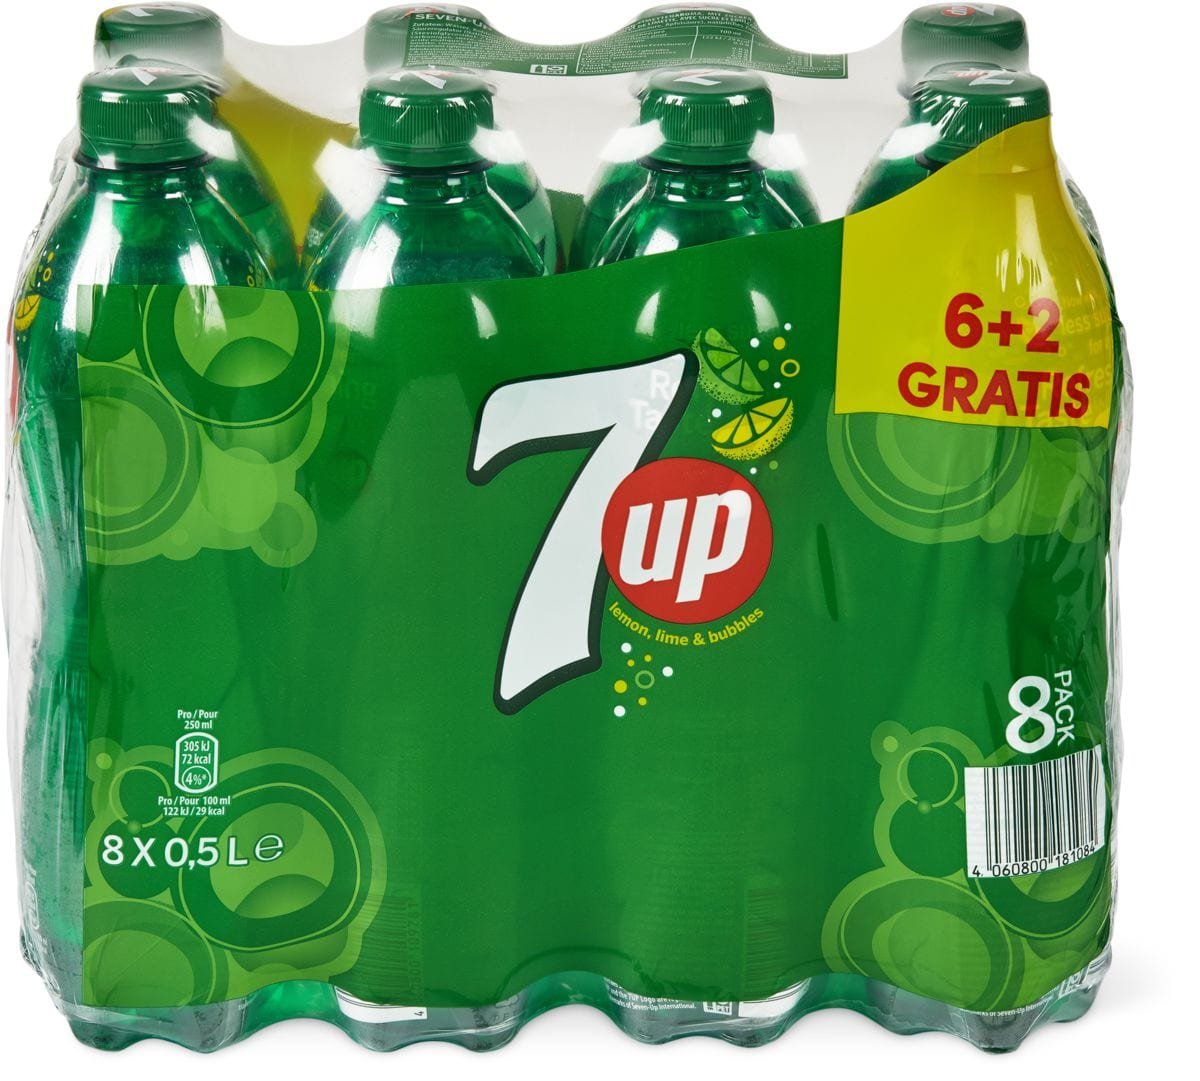 7up Regular und 7up Free im 8er-Pack, 8 x 50 cl